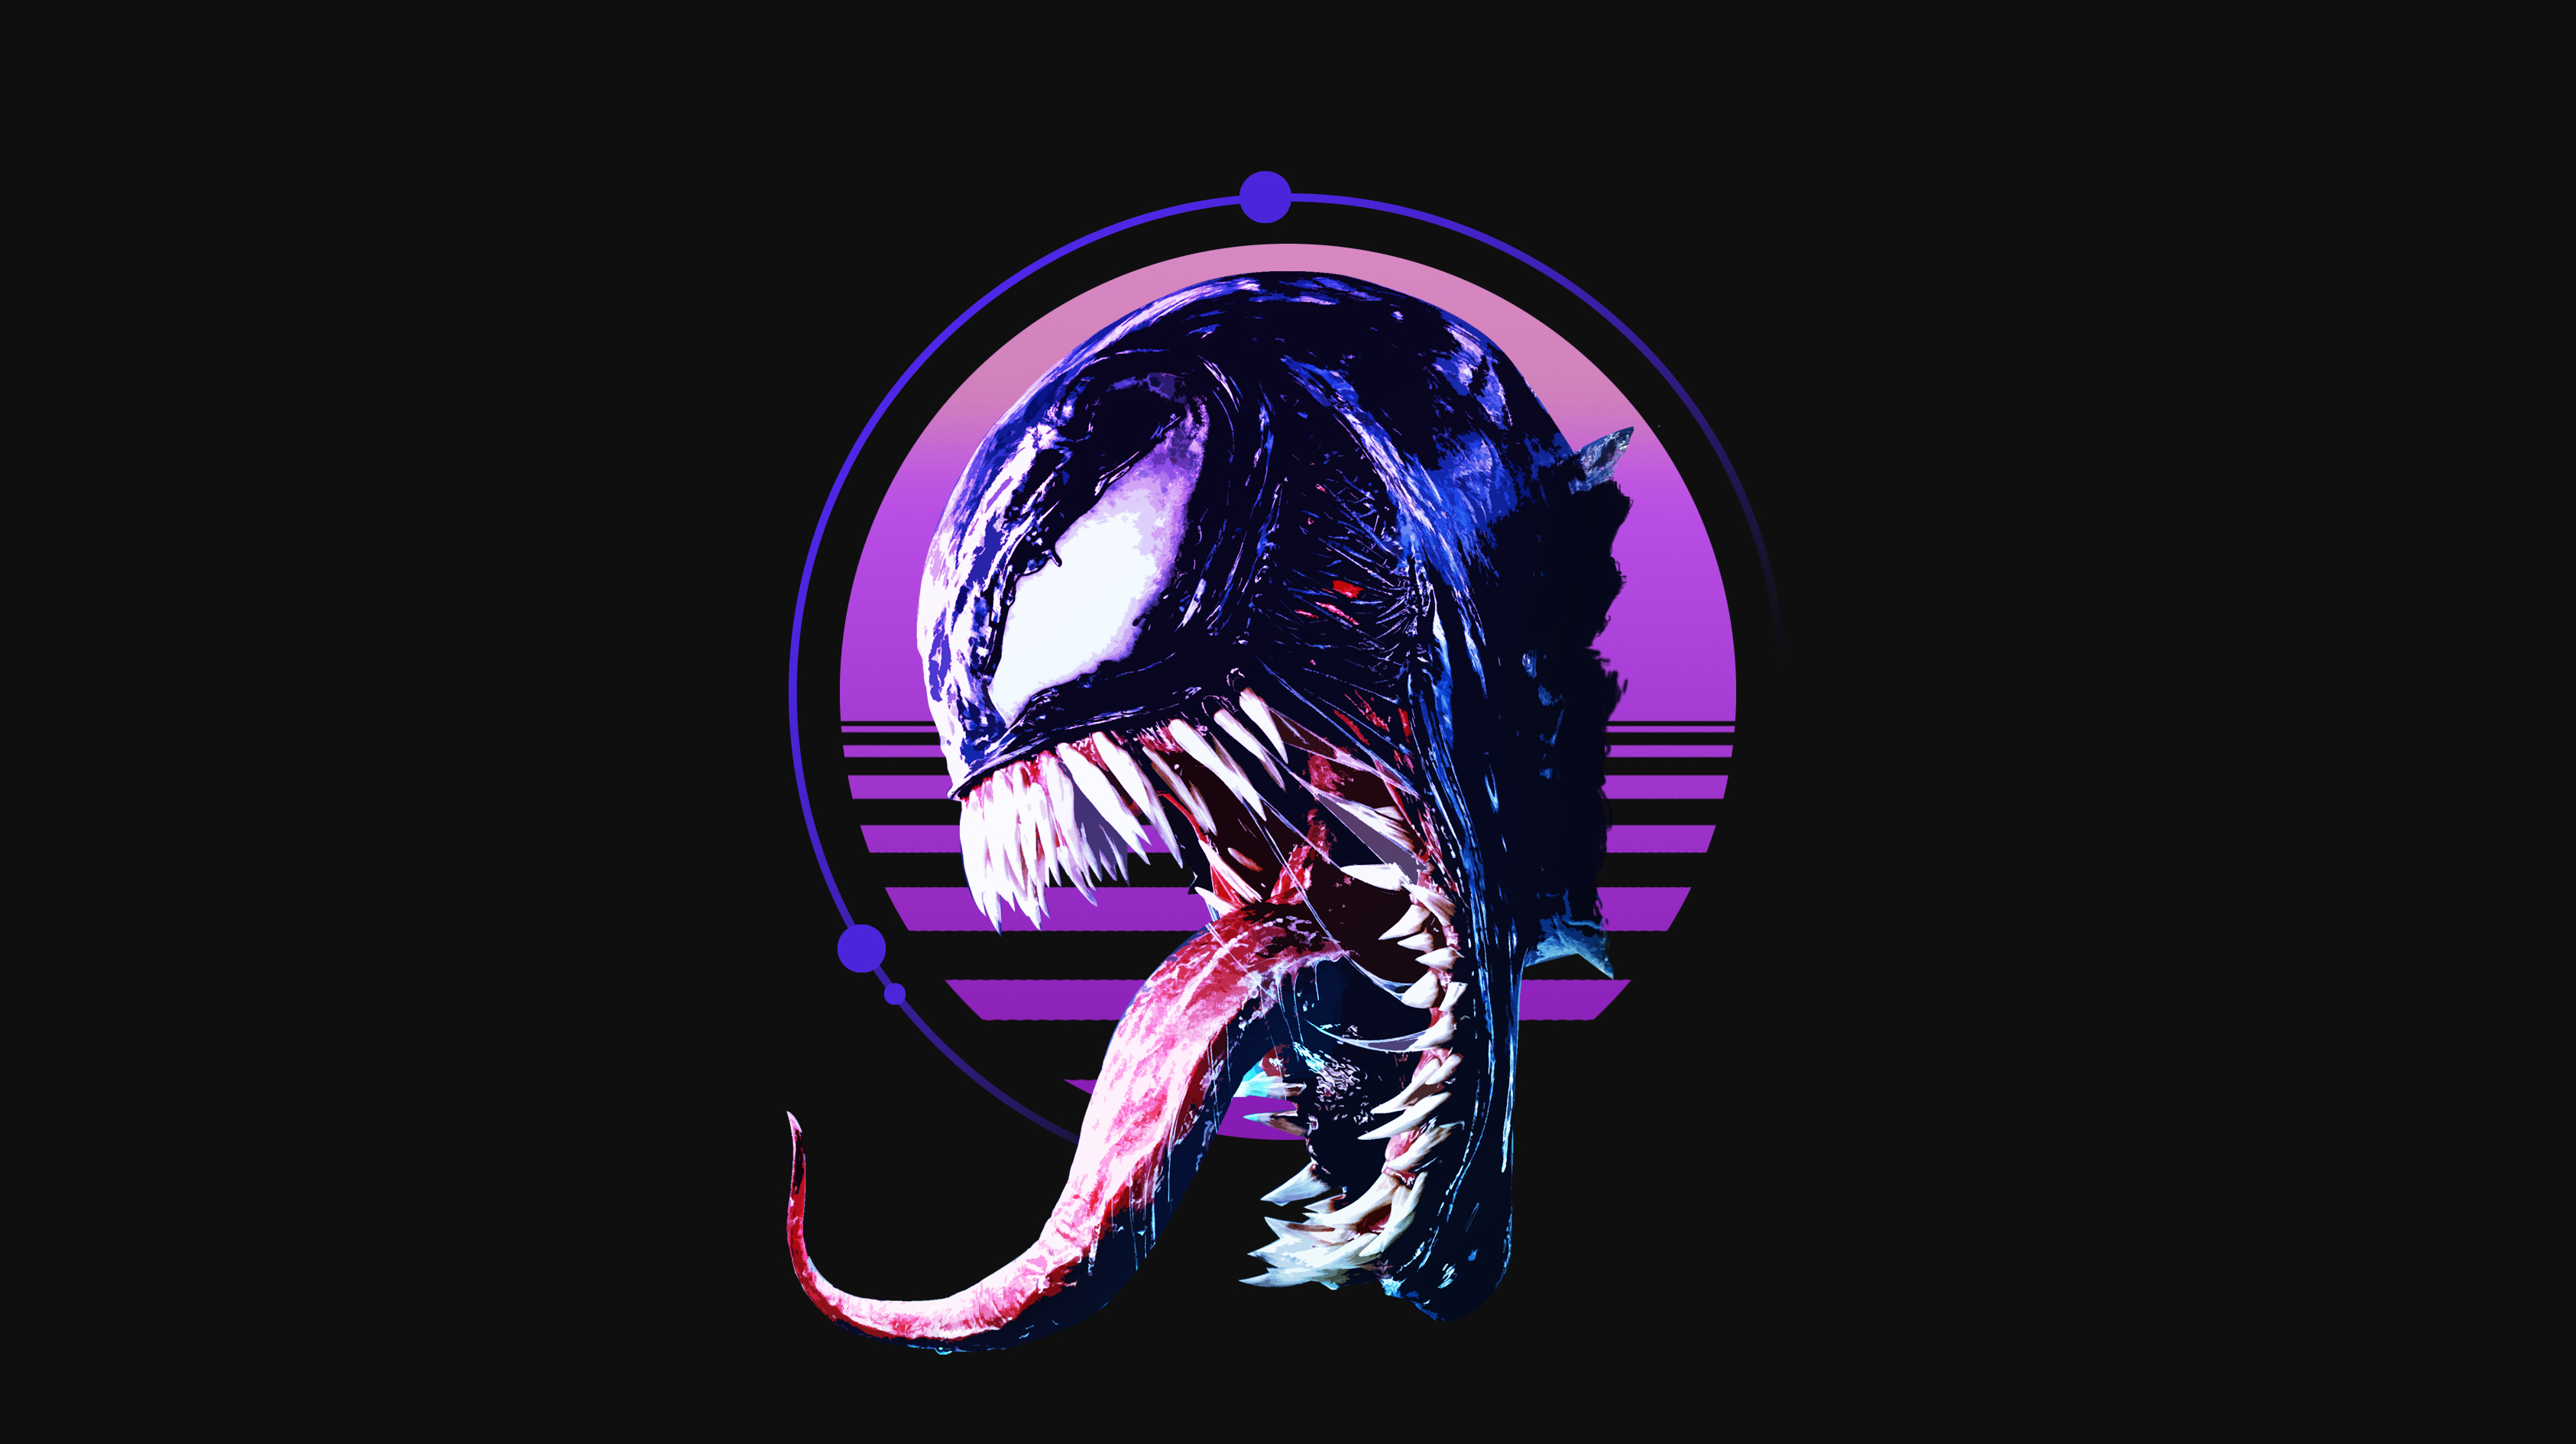 Retro Venom Art Wallpaper Hd Movies 4k Wallpapers Images Photos And Background